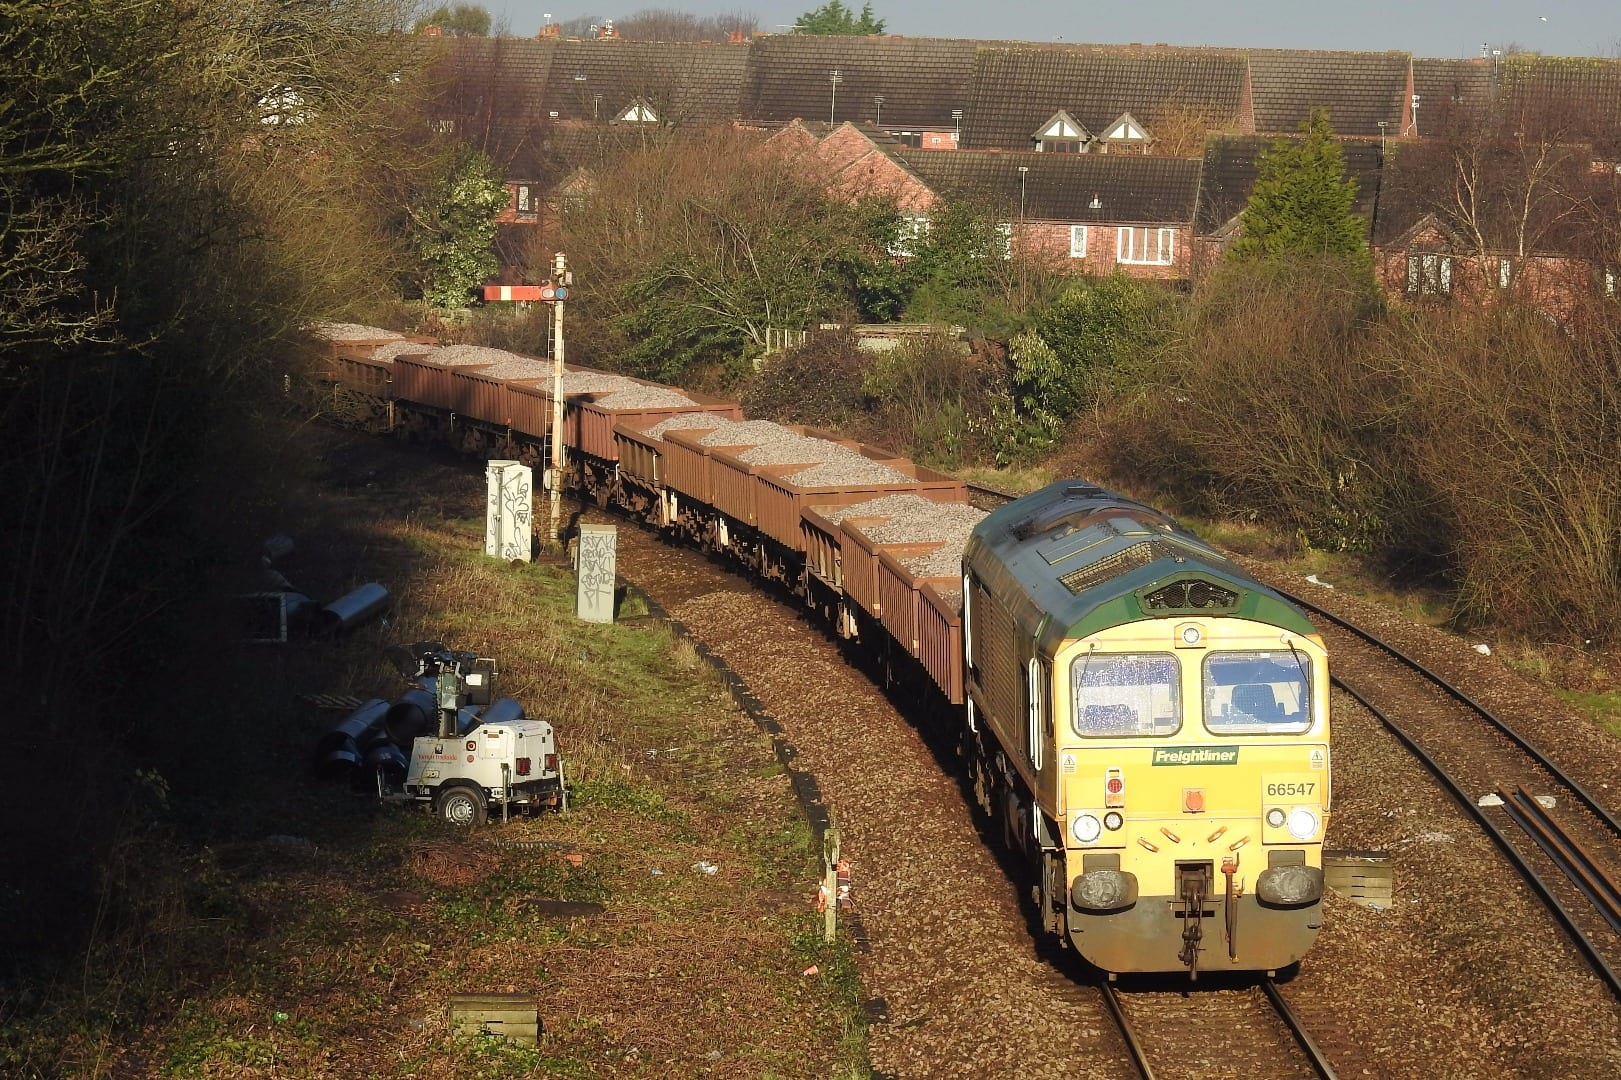 Diesel engine waits with ballast to be used in works at Poulton. Photo Barrie C Woods